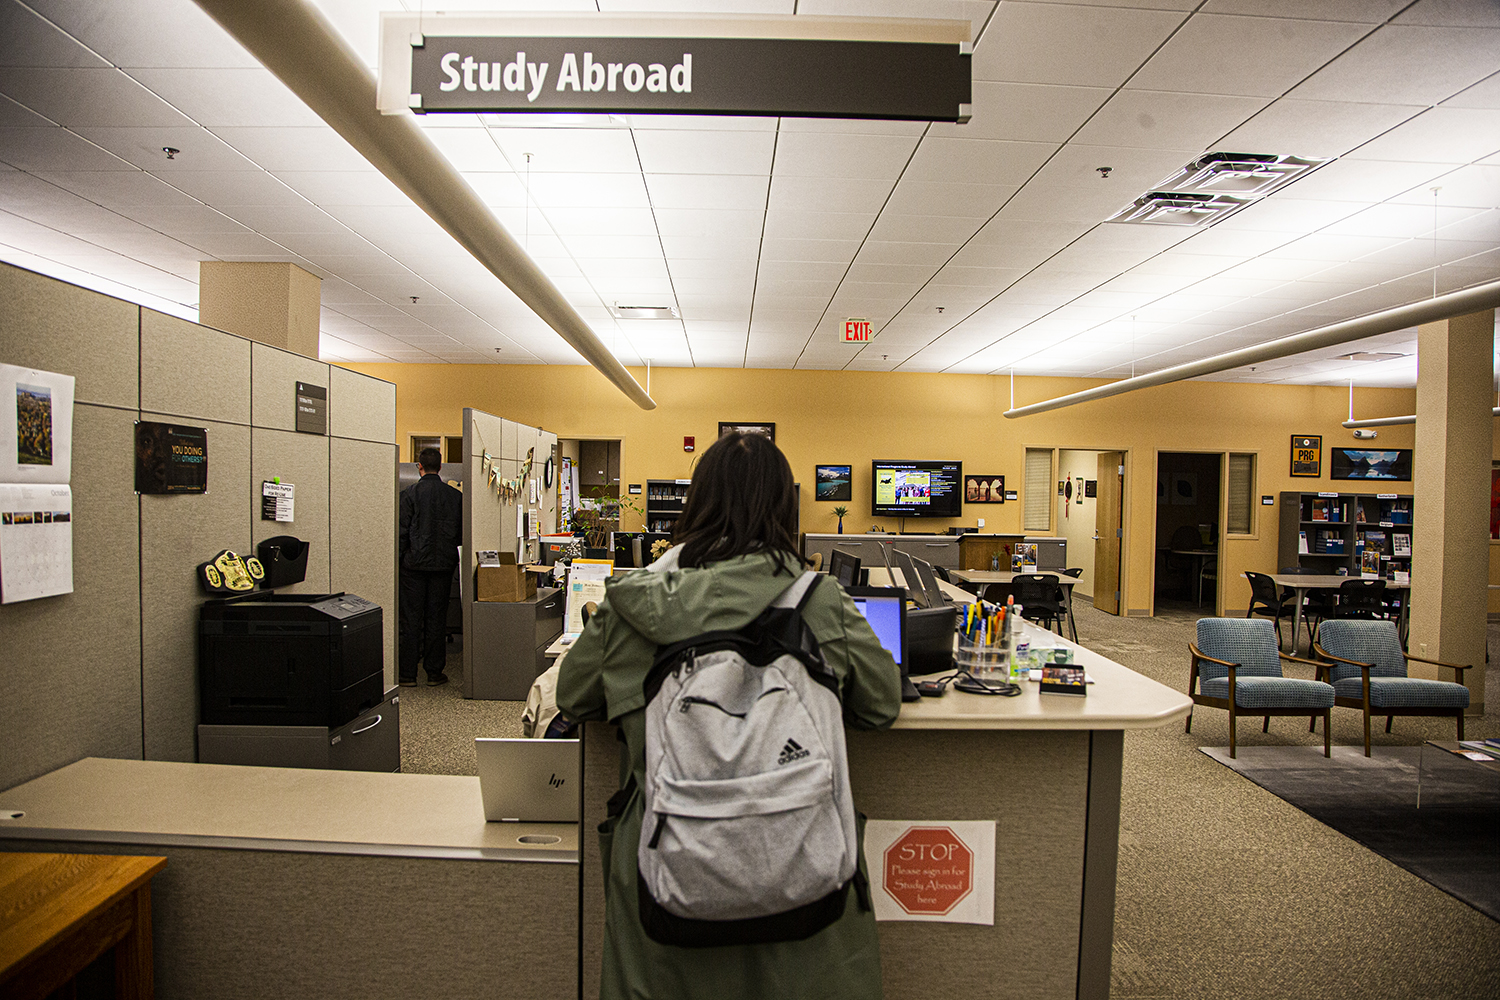 The University of Iowa Study abroad office is seen on Monday, October 21st, 2019. (Tate Hildyard/The Daily Iowan)